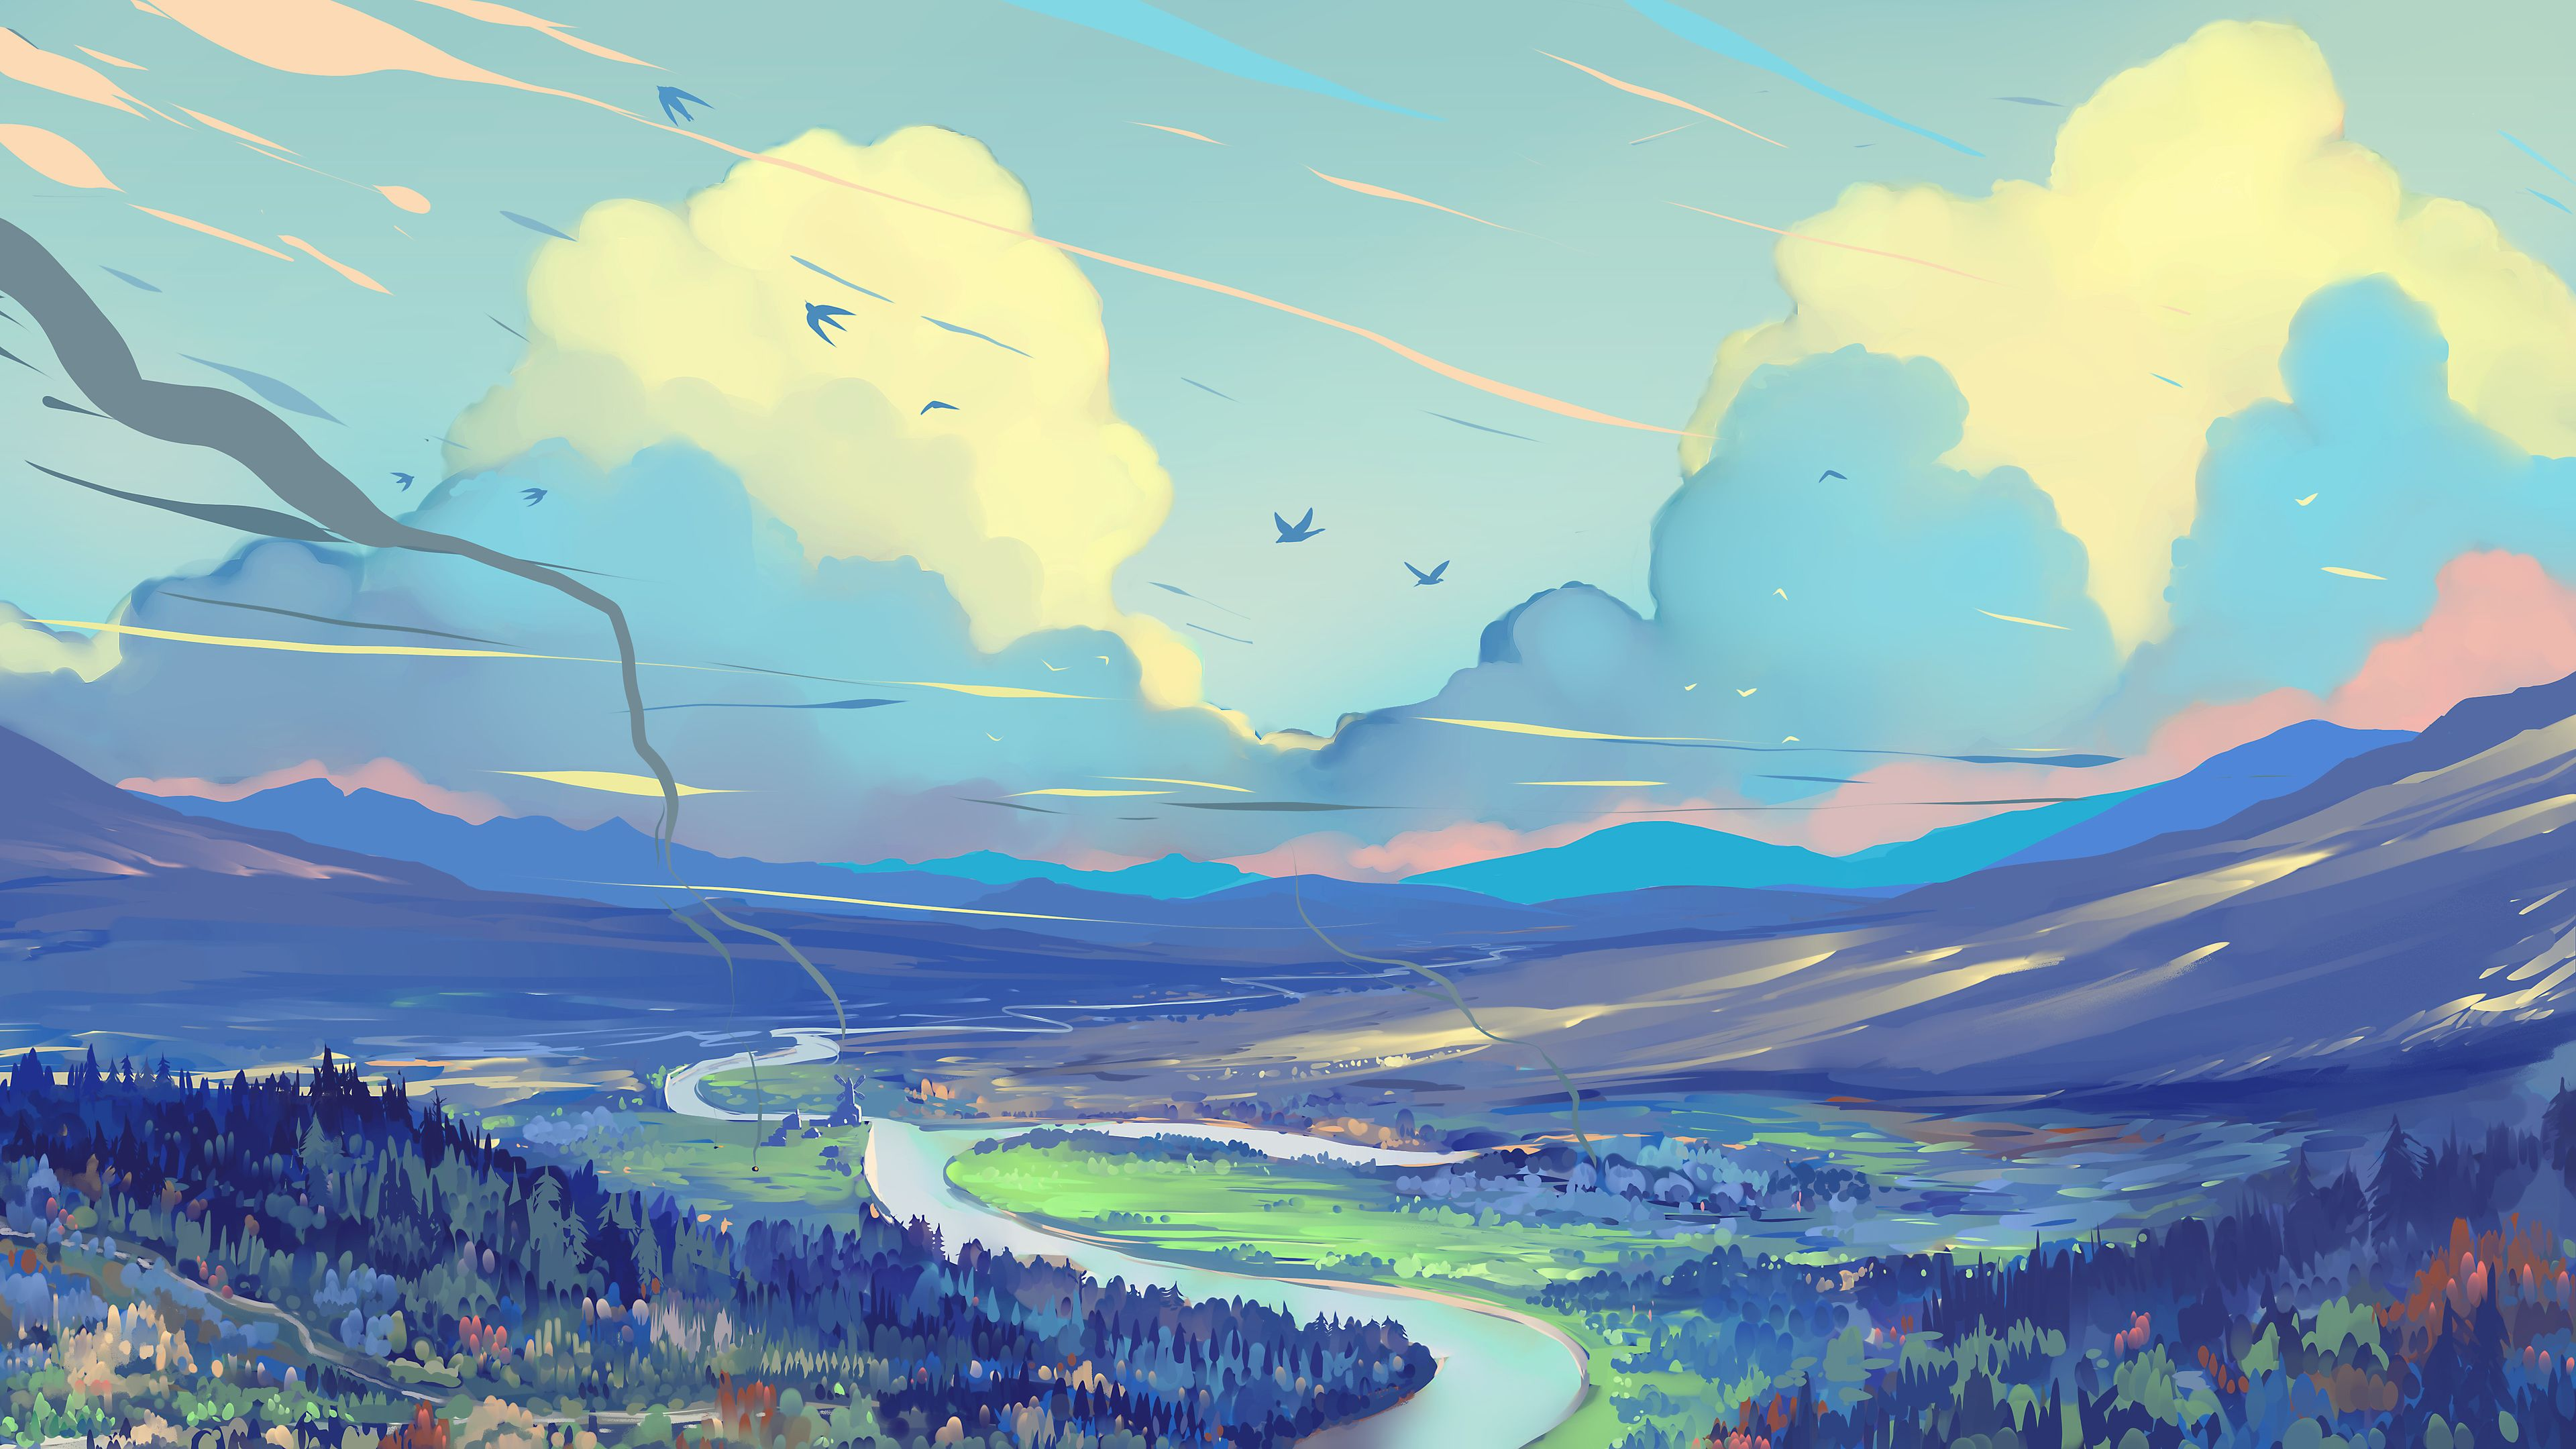 White Blue Red Clouds Scenery Digital Art Painting 4k Painting Wallpapers Hd Wallpapers Digital Art Wall Landscape Wallpaper Art Wallpaper Landscape Wall Art